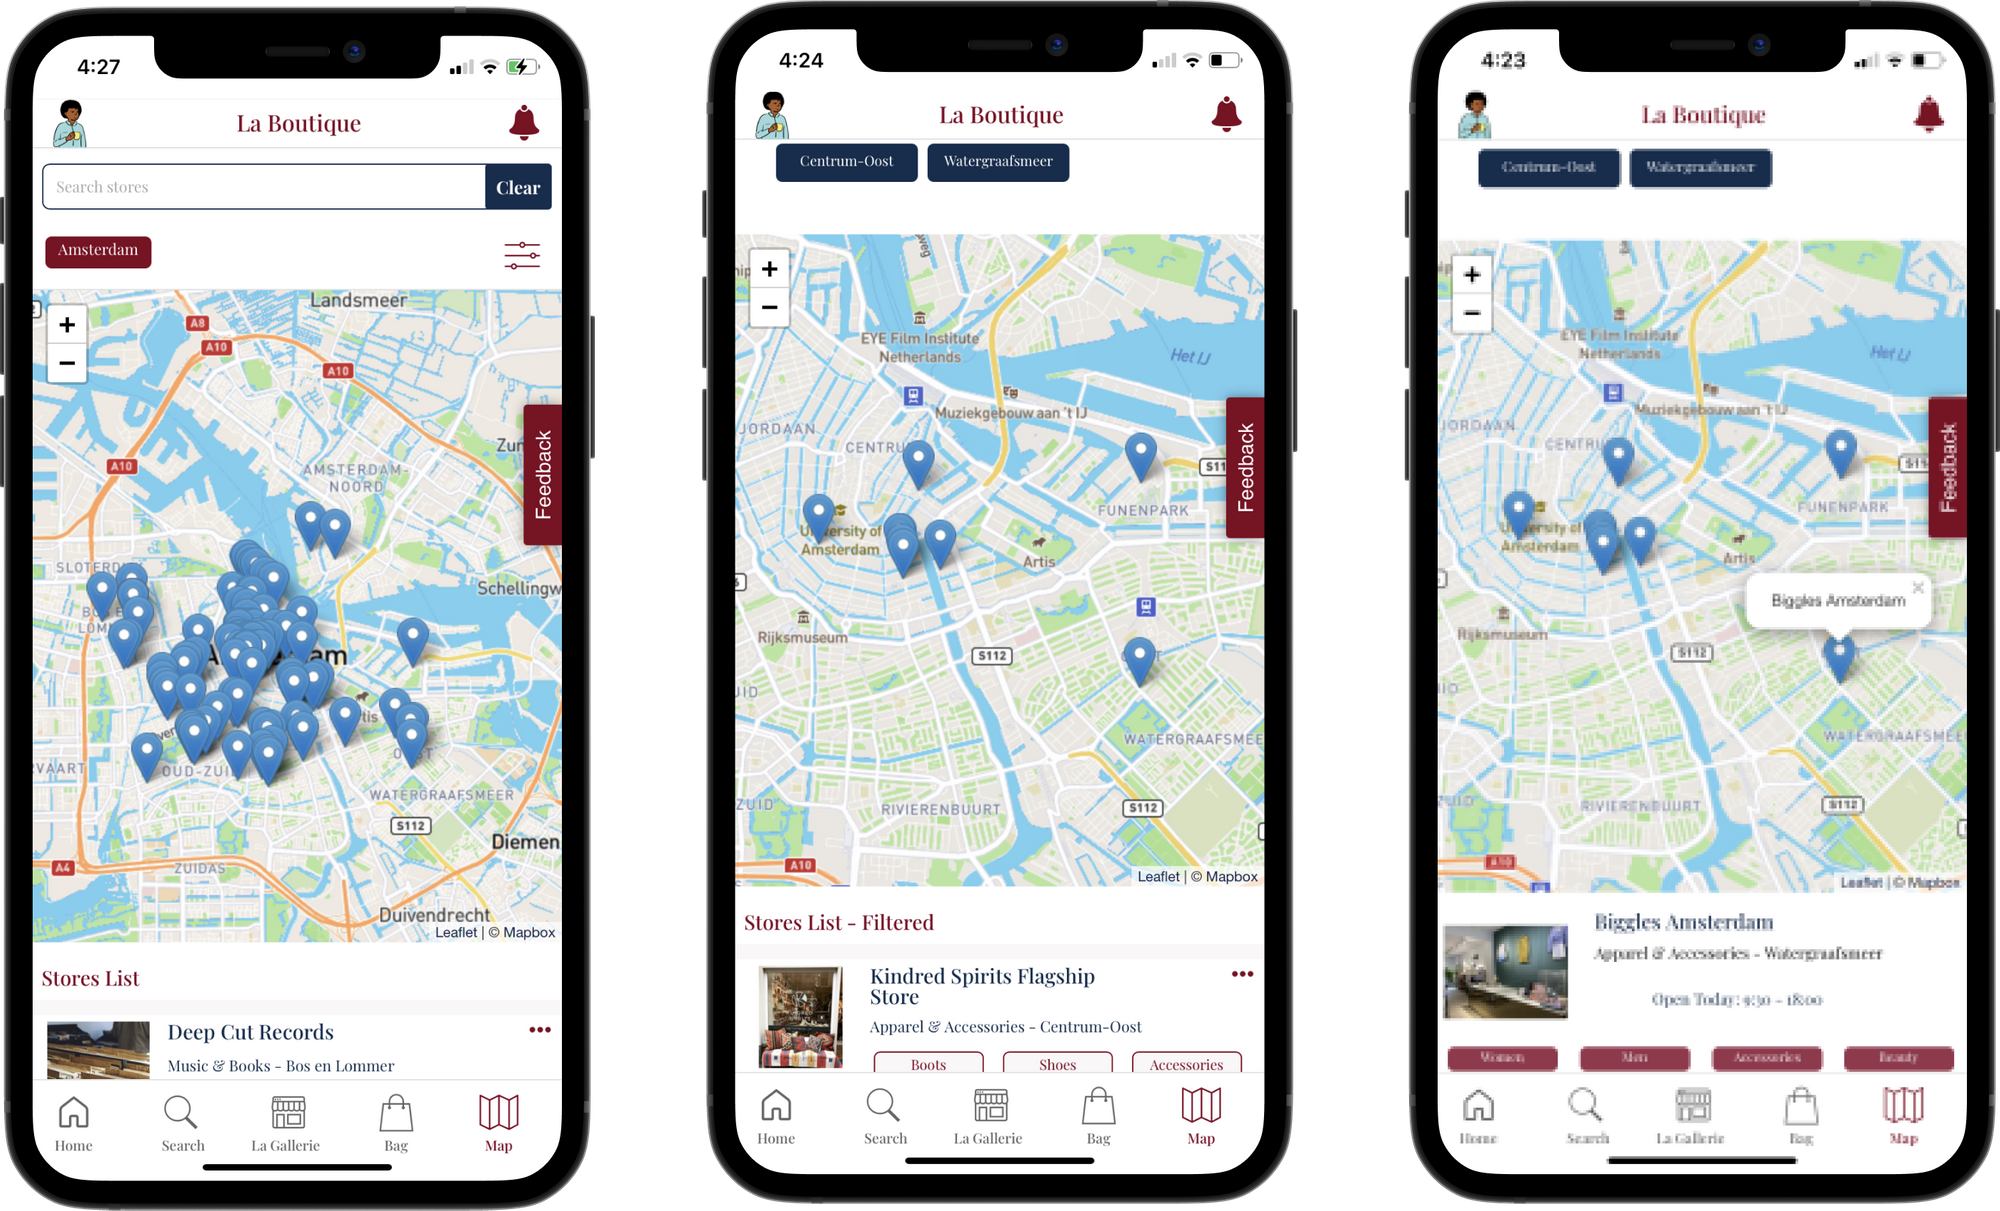 Users can search for local stores easily using the map feature.